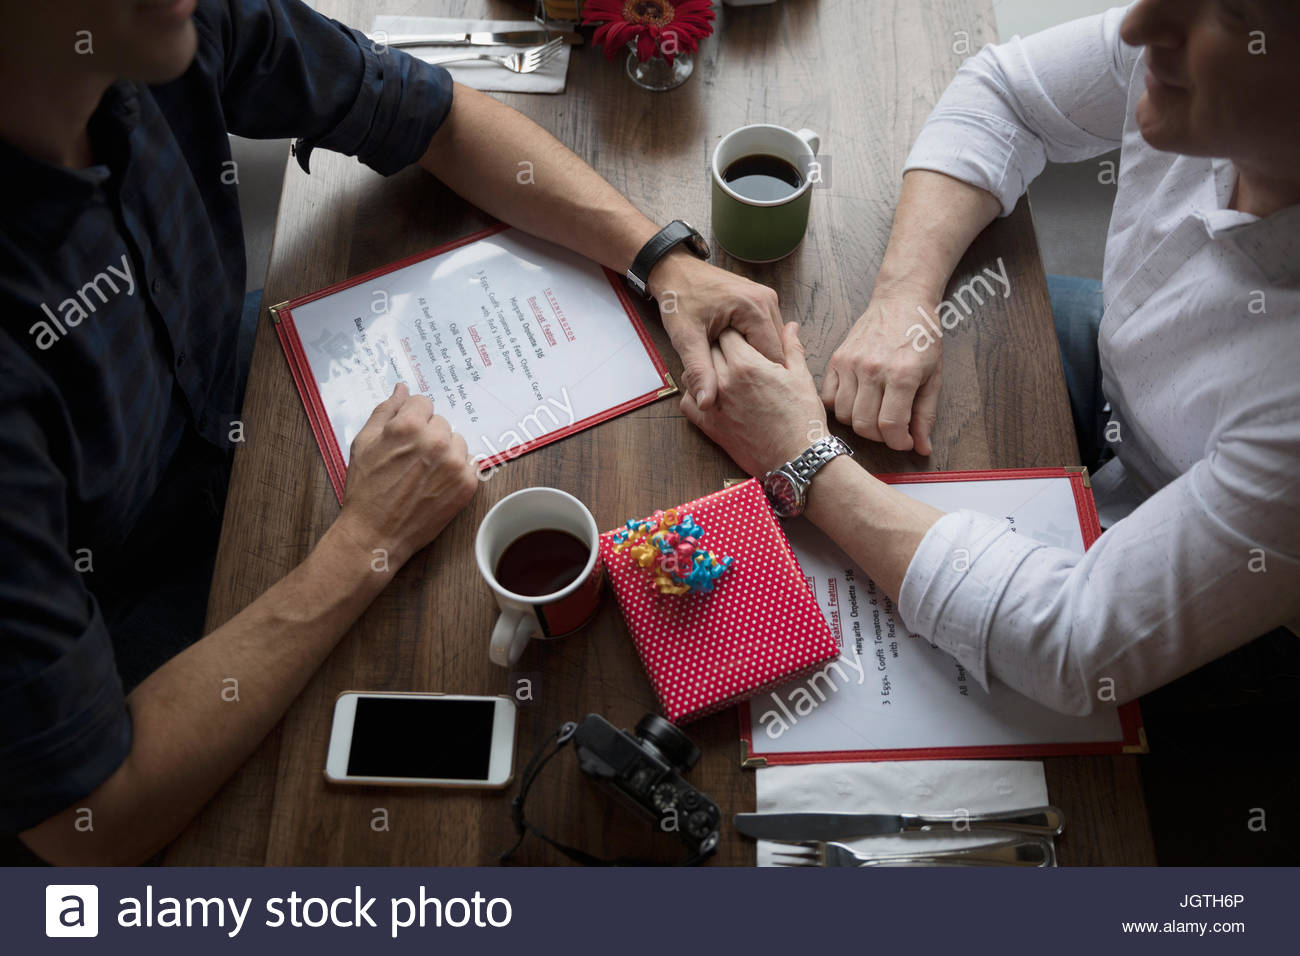 Affectionate male gay couple holding hands, celebrating birthday at diner booth - Stock Image